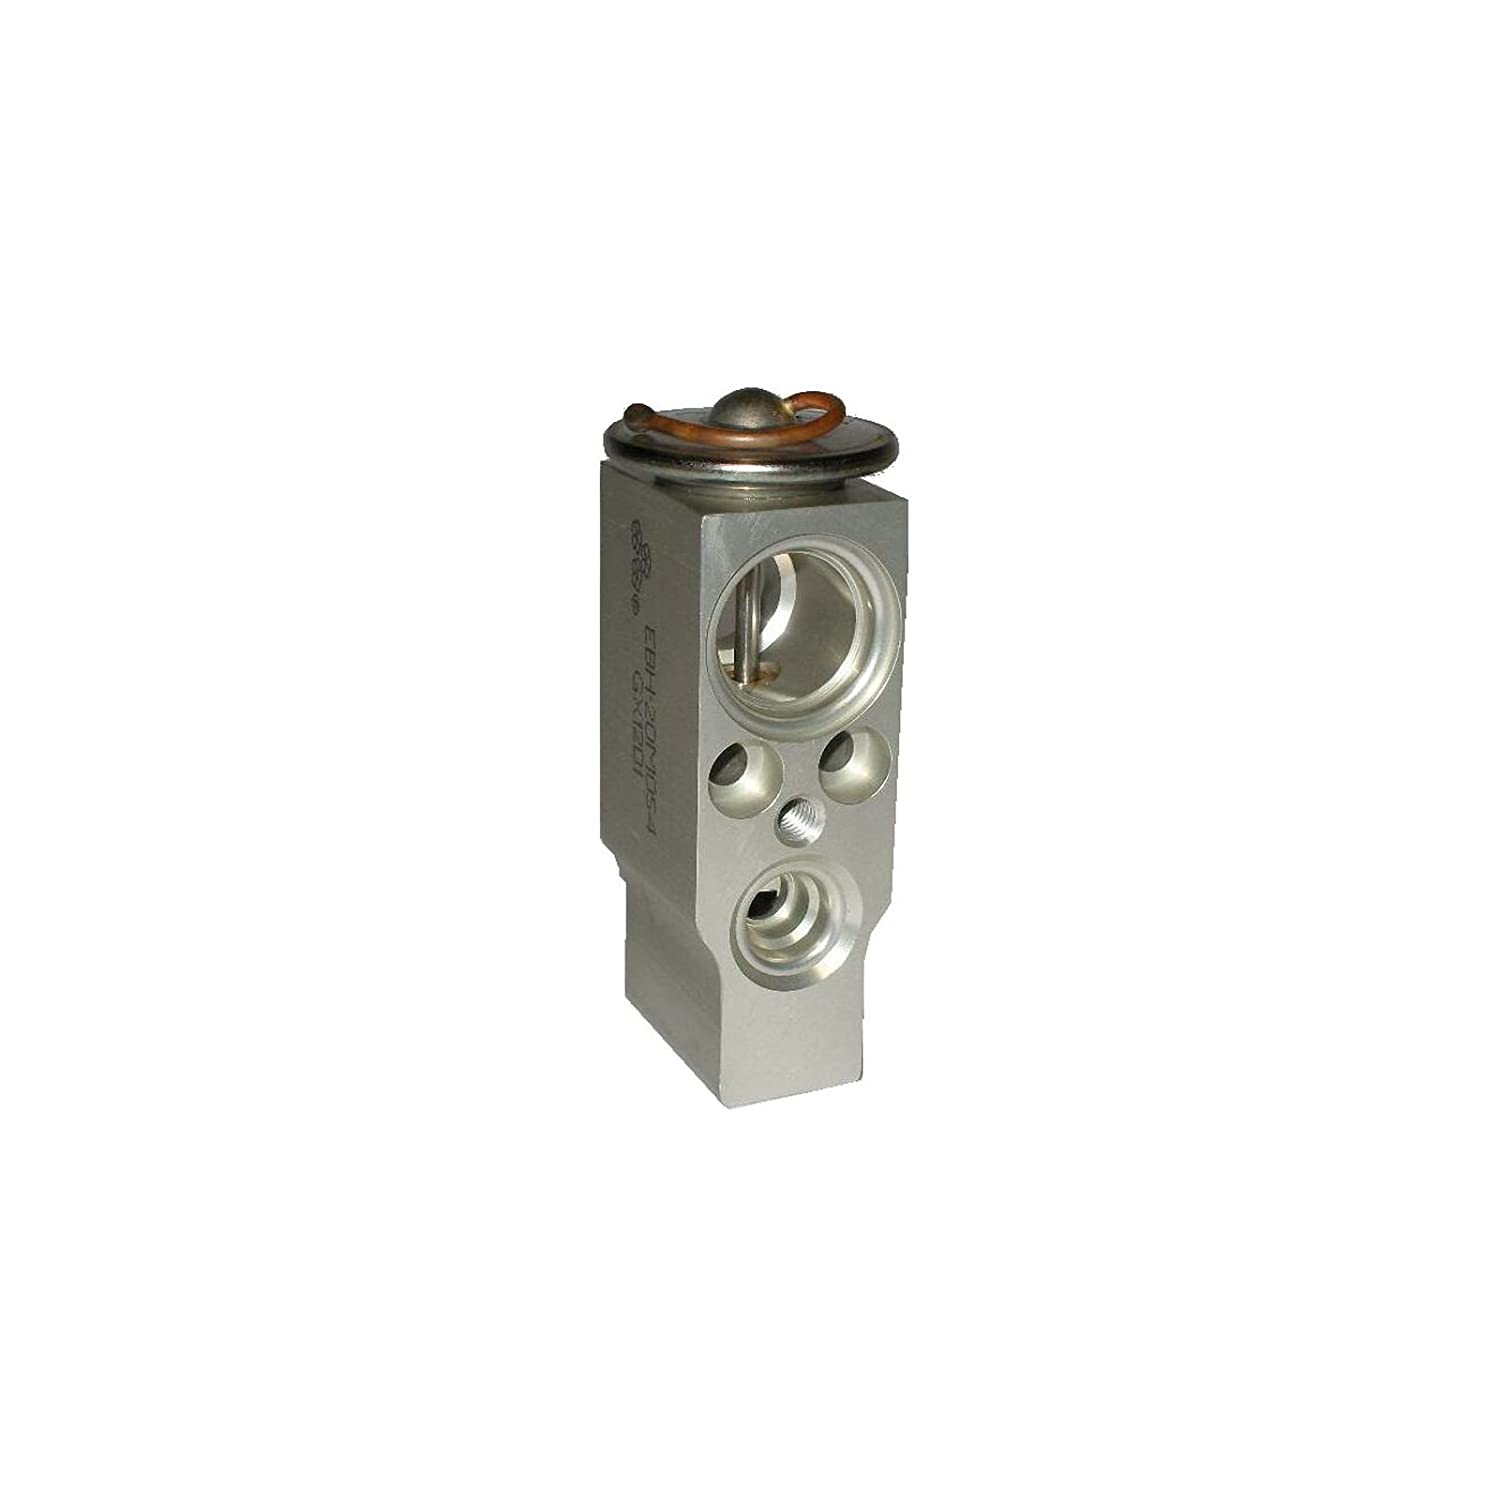 Delphi TSP0585101 Air Conditioning Component